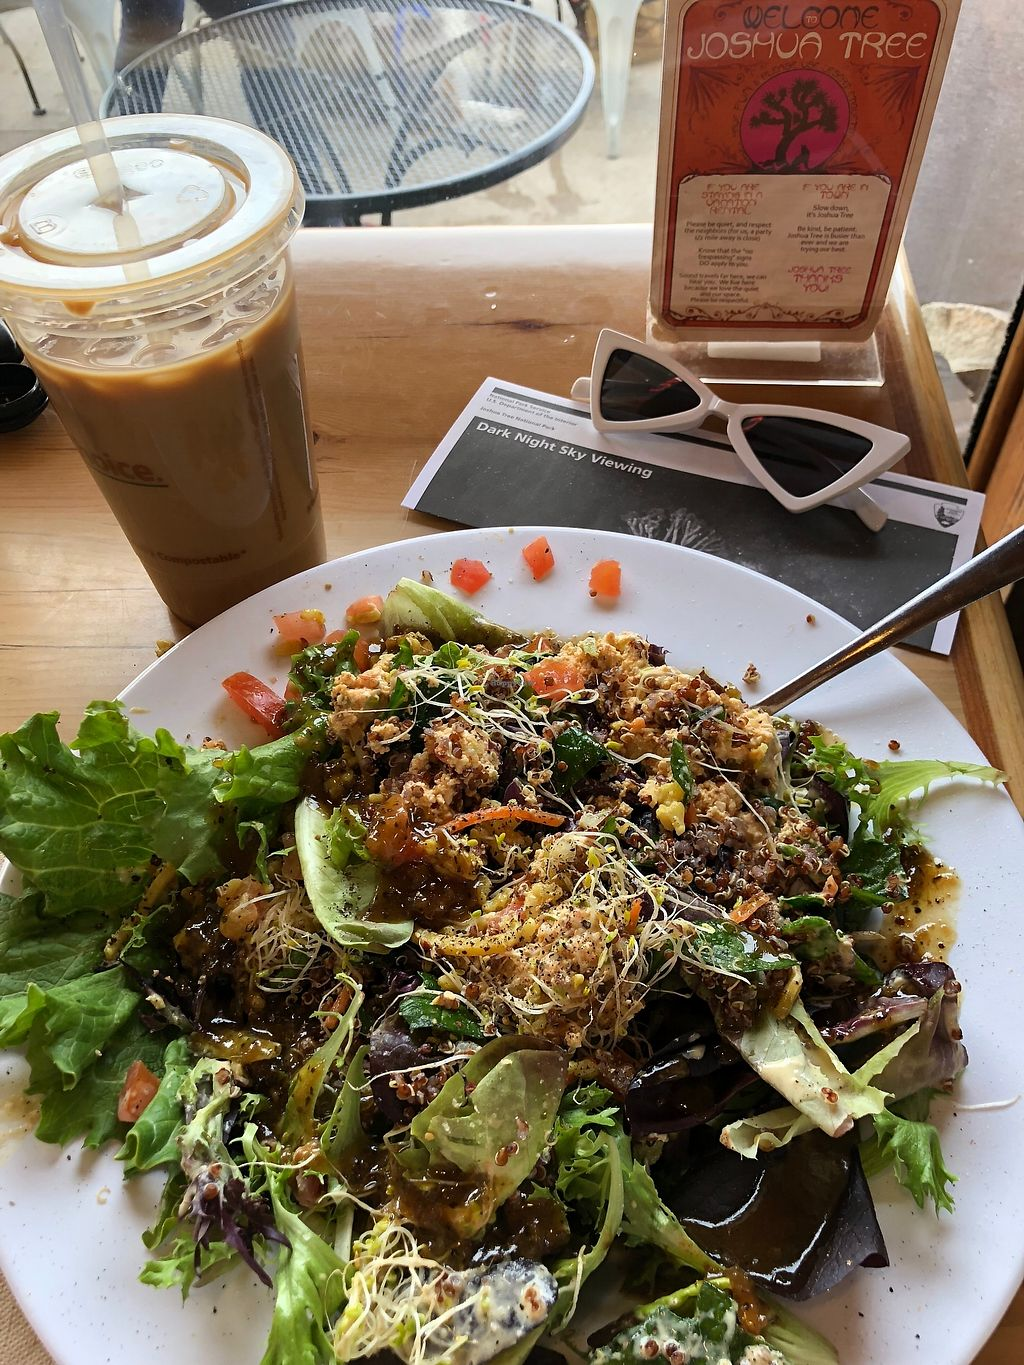 """Photo of Natural Sister Cafe  by <a href=""""/members/profile/defcasoul"""">defcasoul</a> <br/>super fresh greens, great soy latte & vegan carrot cake for dessert! <br/> March 15, 2018  - <a href='/contact/abuse/image/18427/370773'>Report</a>"""